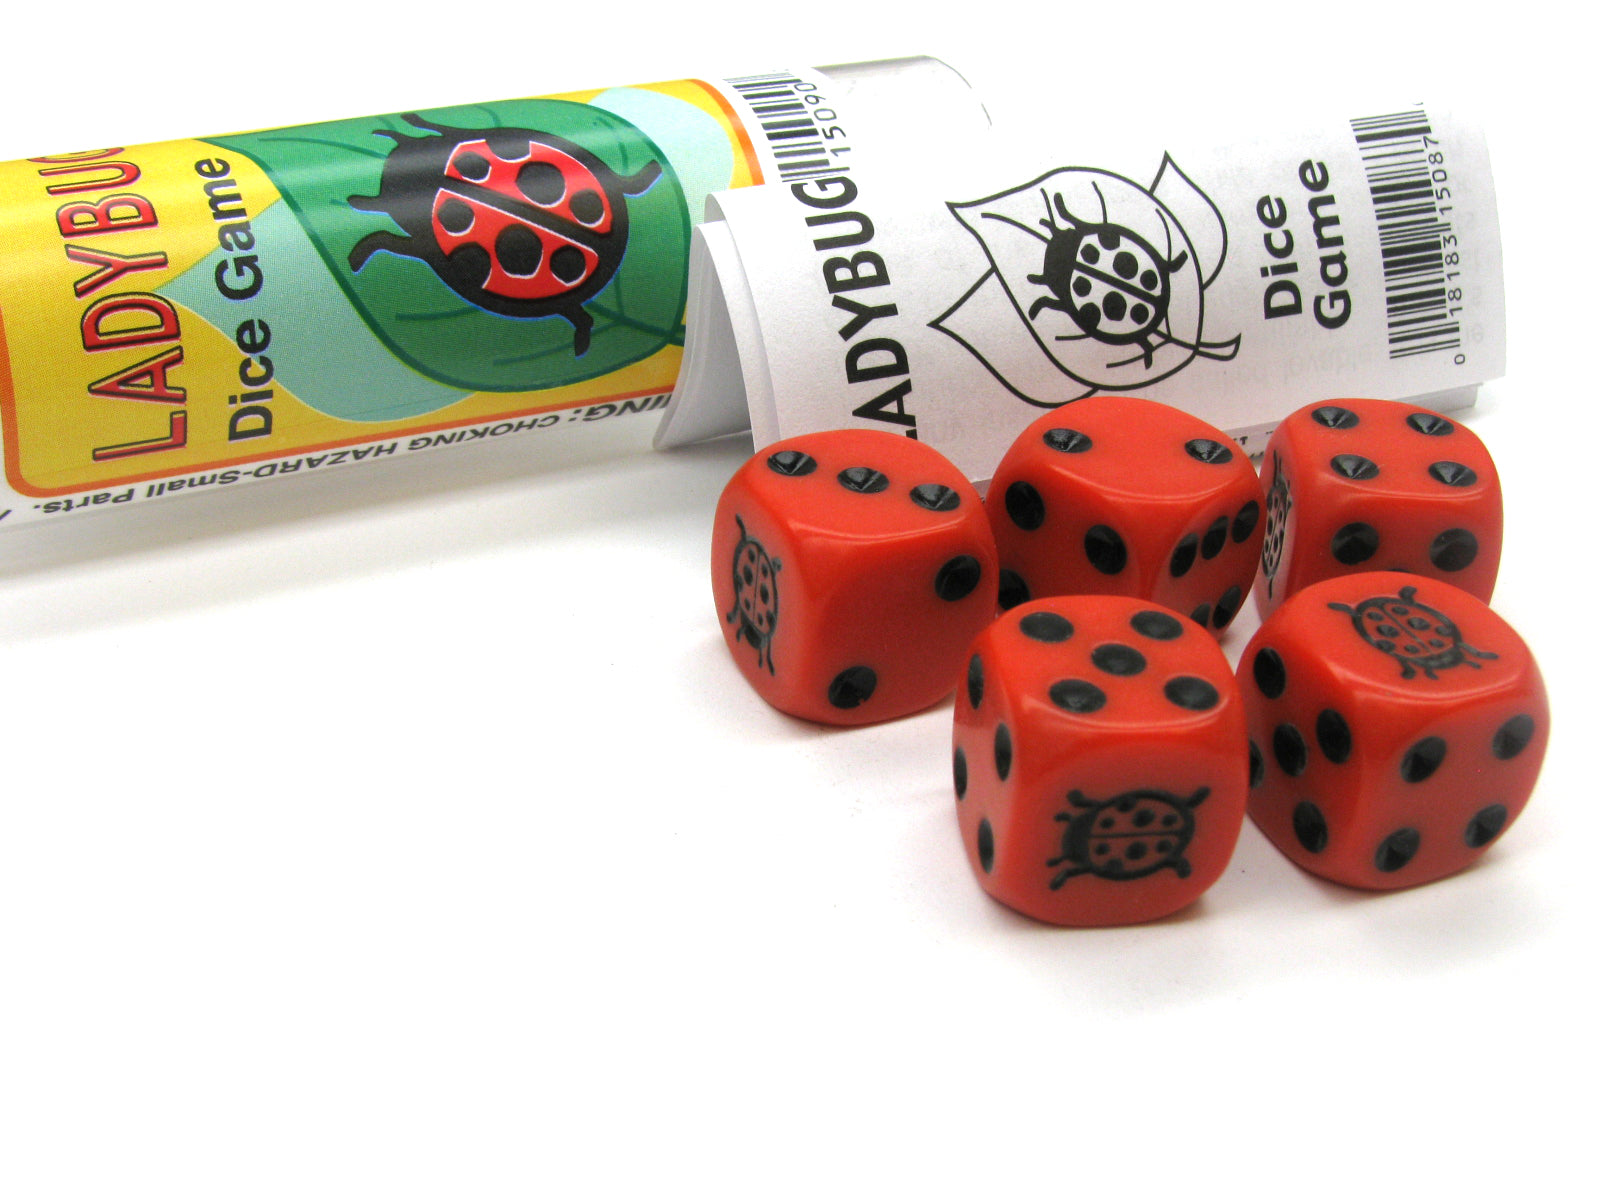 Ladybug Dice Game 5 Dice Set with Travel Tube and Instructions